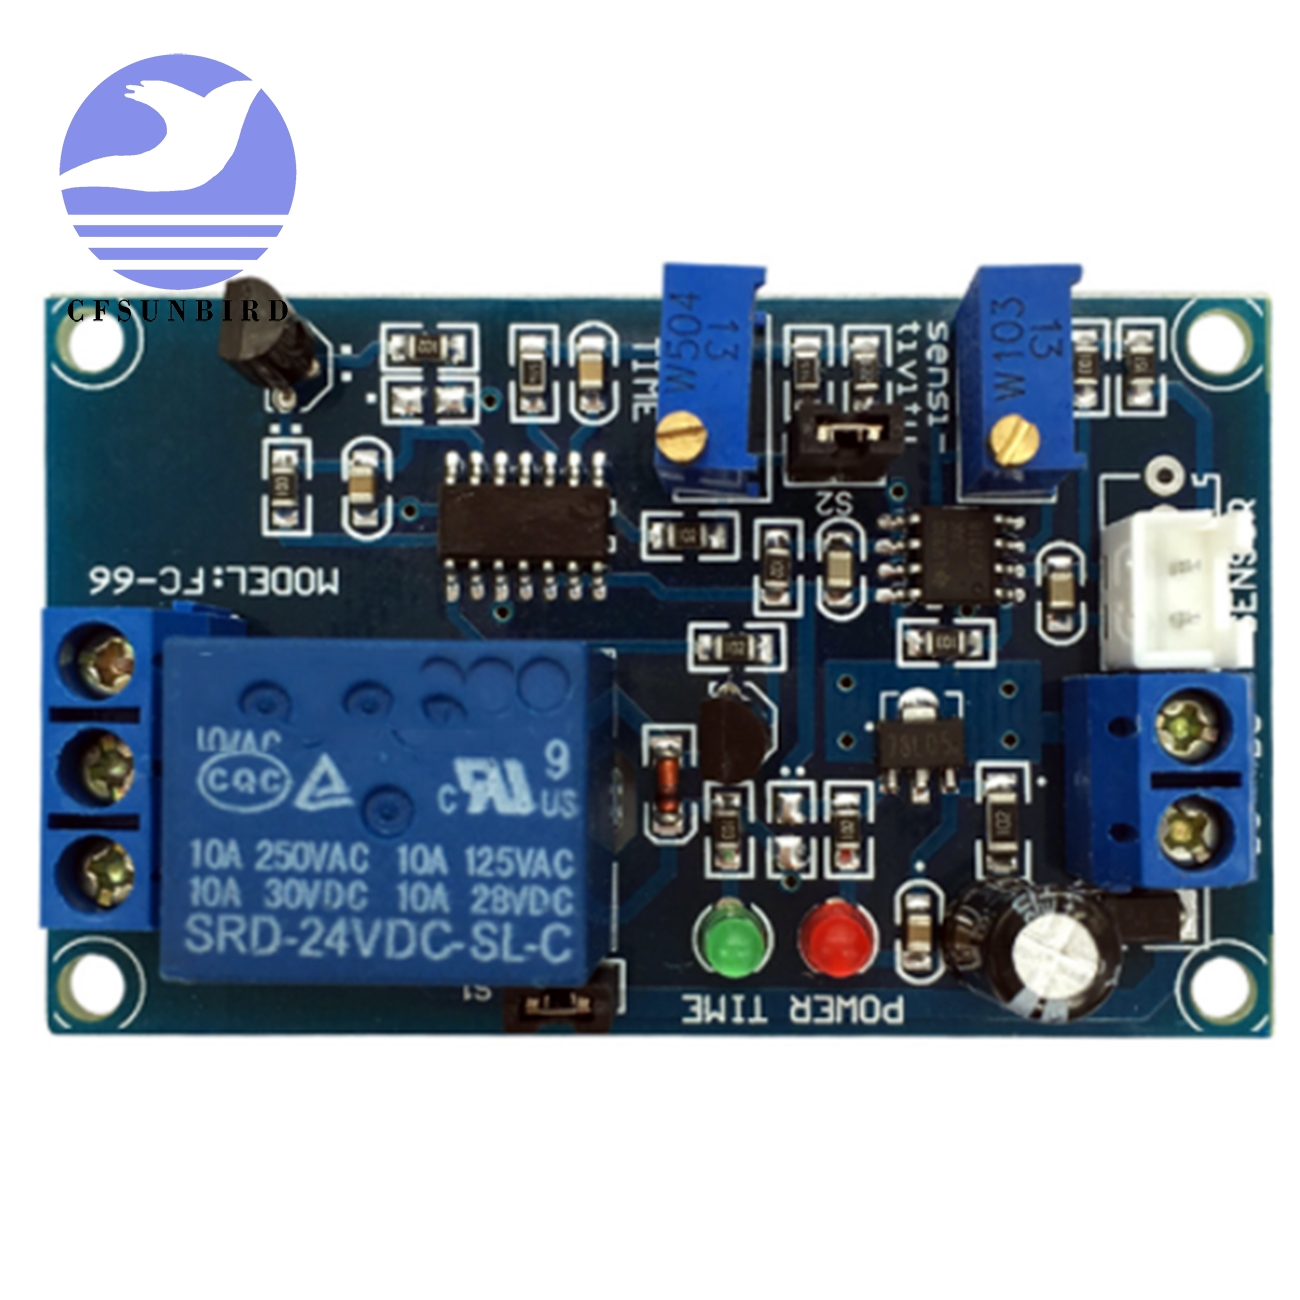 Cfsunbird 12v Photoresistor Relay Module Light Brightness Sensor Wiring A 24vdc Timer Detection Controller Switch On Off With Wires For Car In Integrated Circuits From